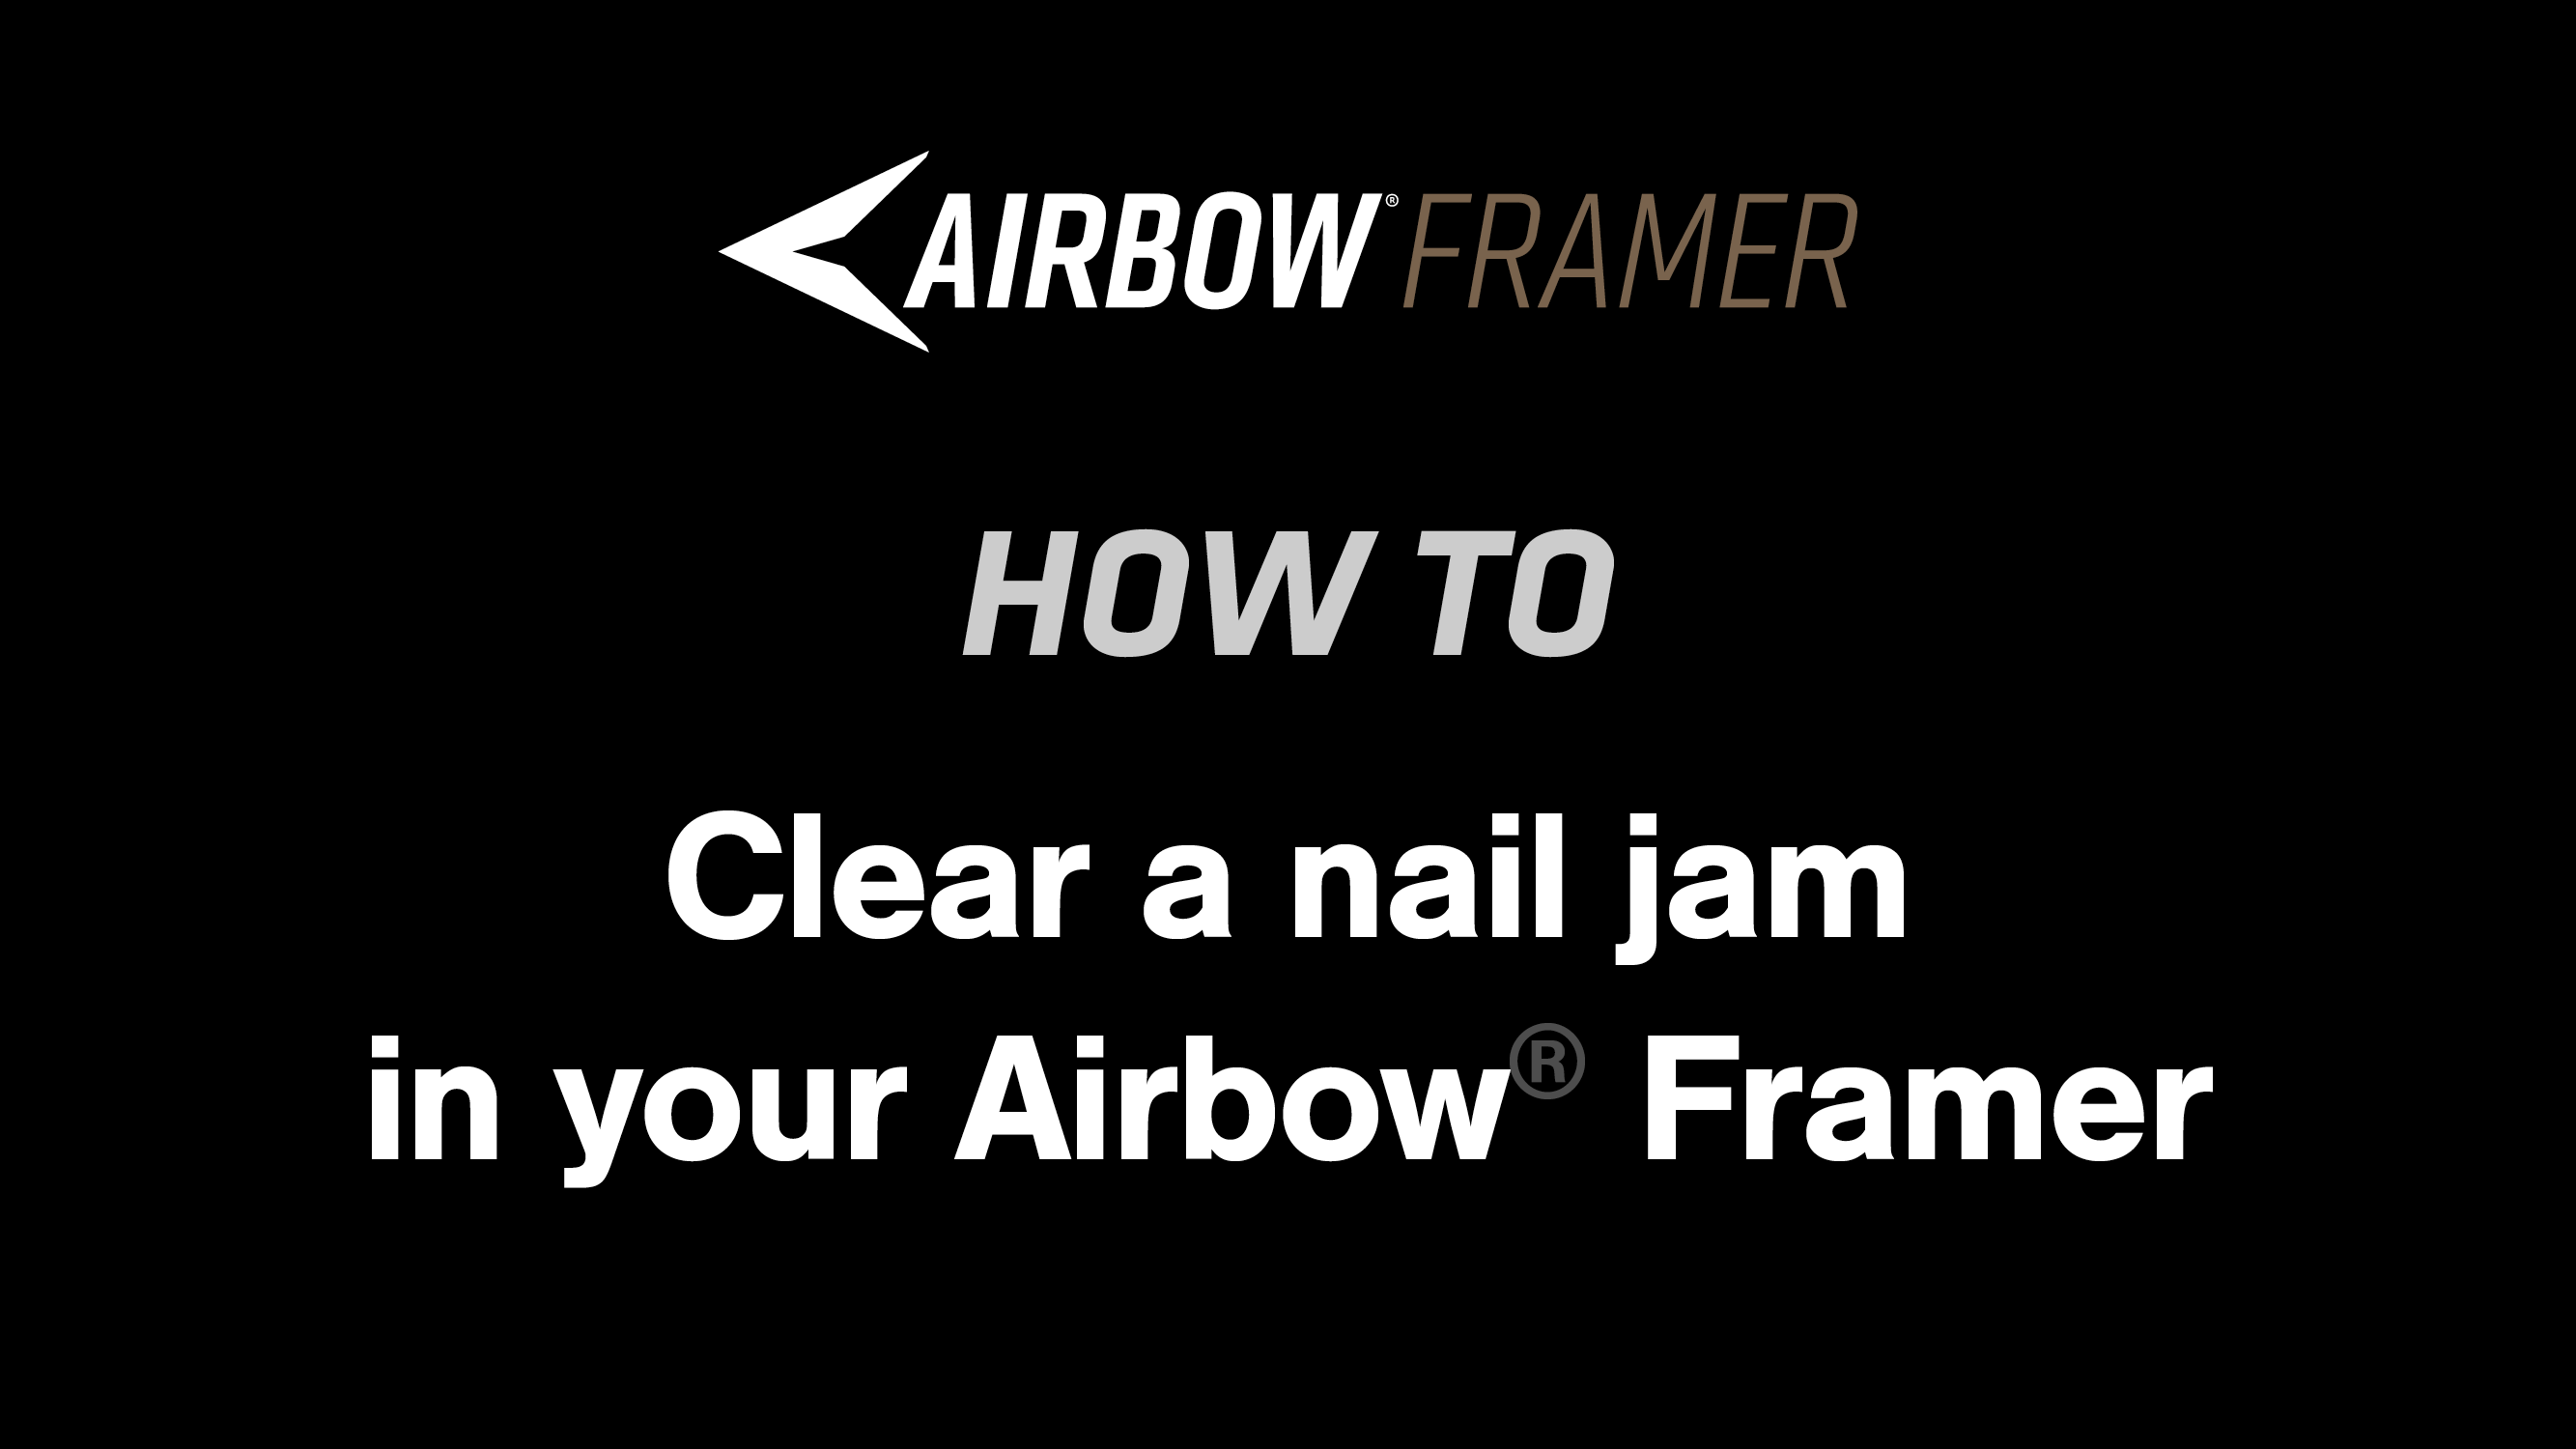 How to: Clear a nail jam